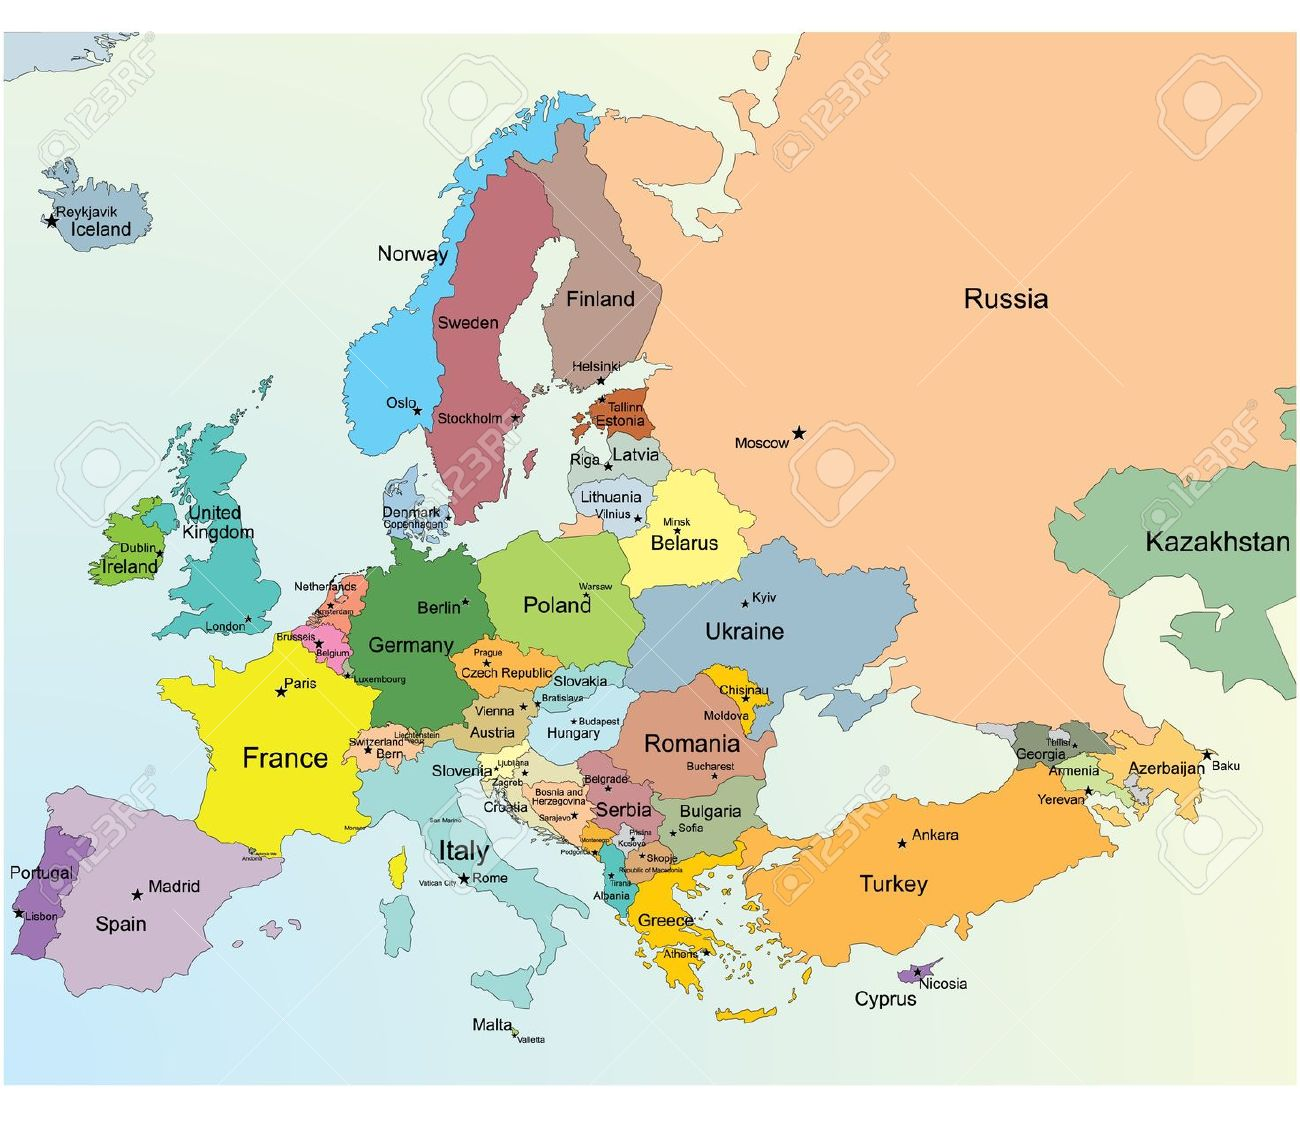 The Memory City Blog How To Memorize Every Country And Capital In - Austria location in europe